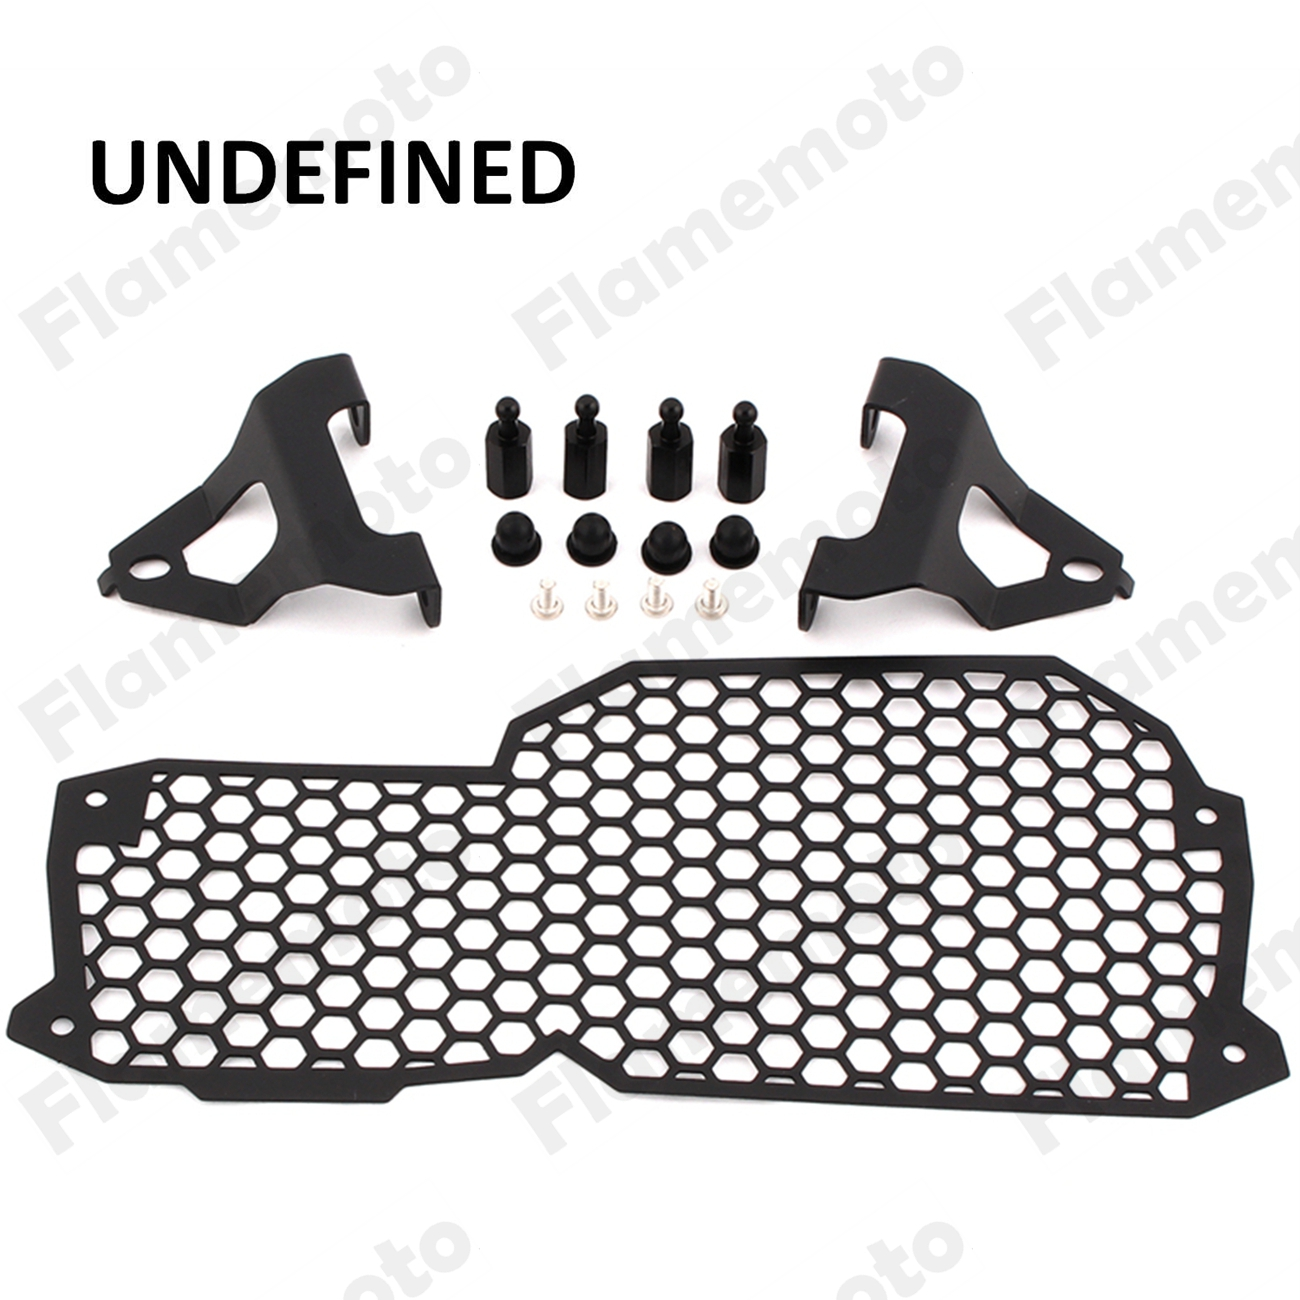 Motorcycle Parts Black Headlight Headlamp Mesh Protector Guard Cover For BMW F650GS 2008-2013 F700GS F800GS 2008-2016  UNDEFINED